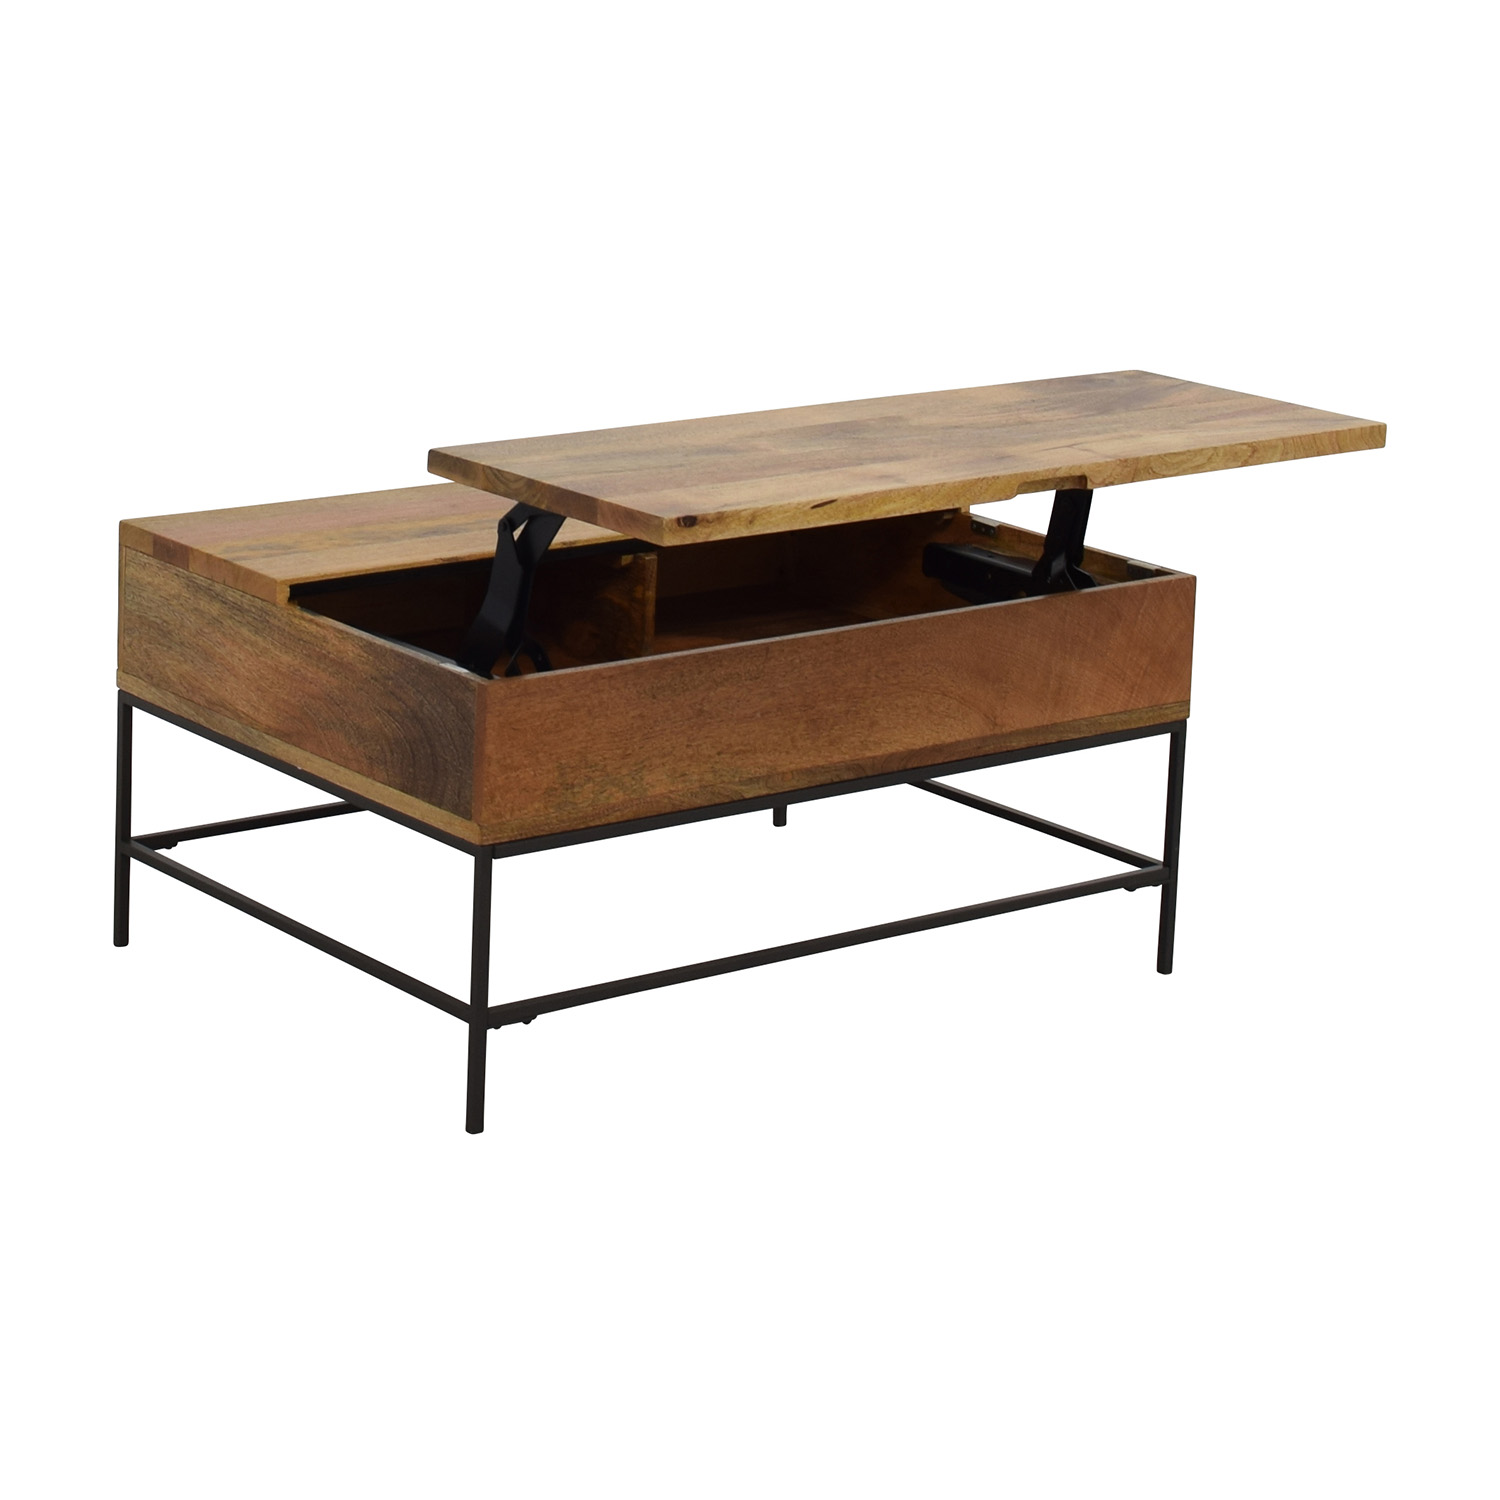 West Elm Storage Coffee Table Rascalartsnyc